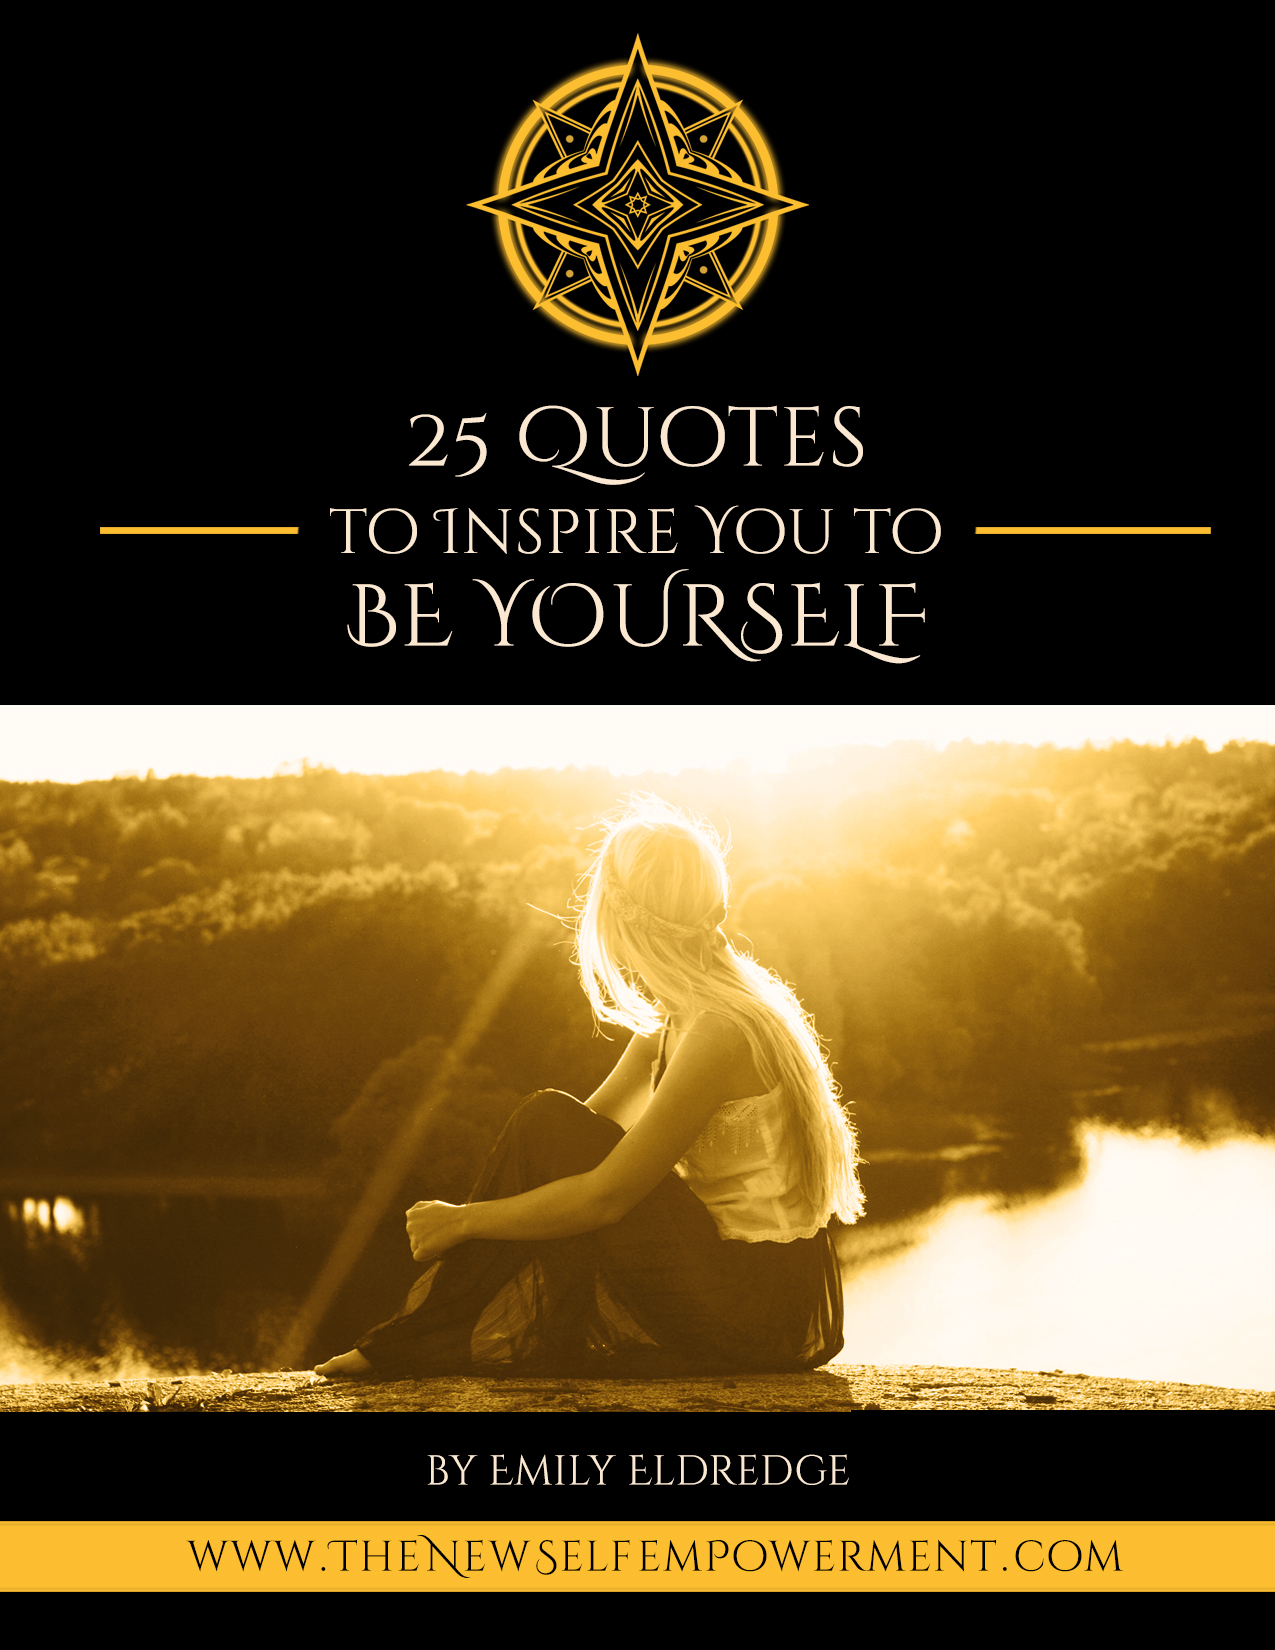 25 QUOTES BOOK - BE YOURSELF Cover